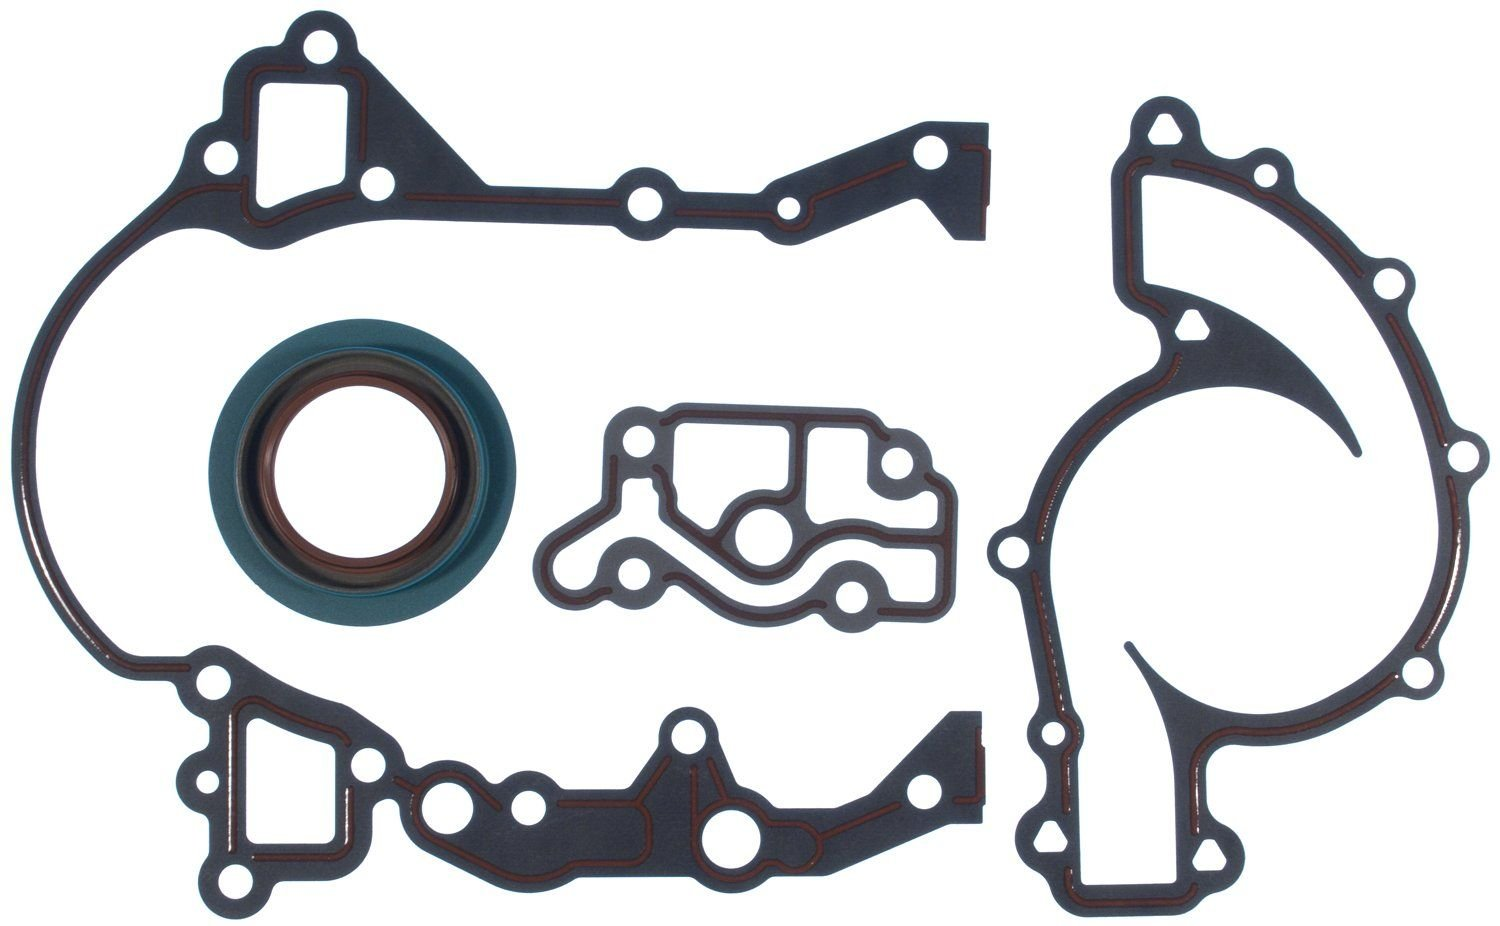 Oldsmobile 88 Engine Timing Cover Gasket Set Replacement Felpro 1992 Picture Of 6 Cyl 38l Victor Gaskets Jv1114